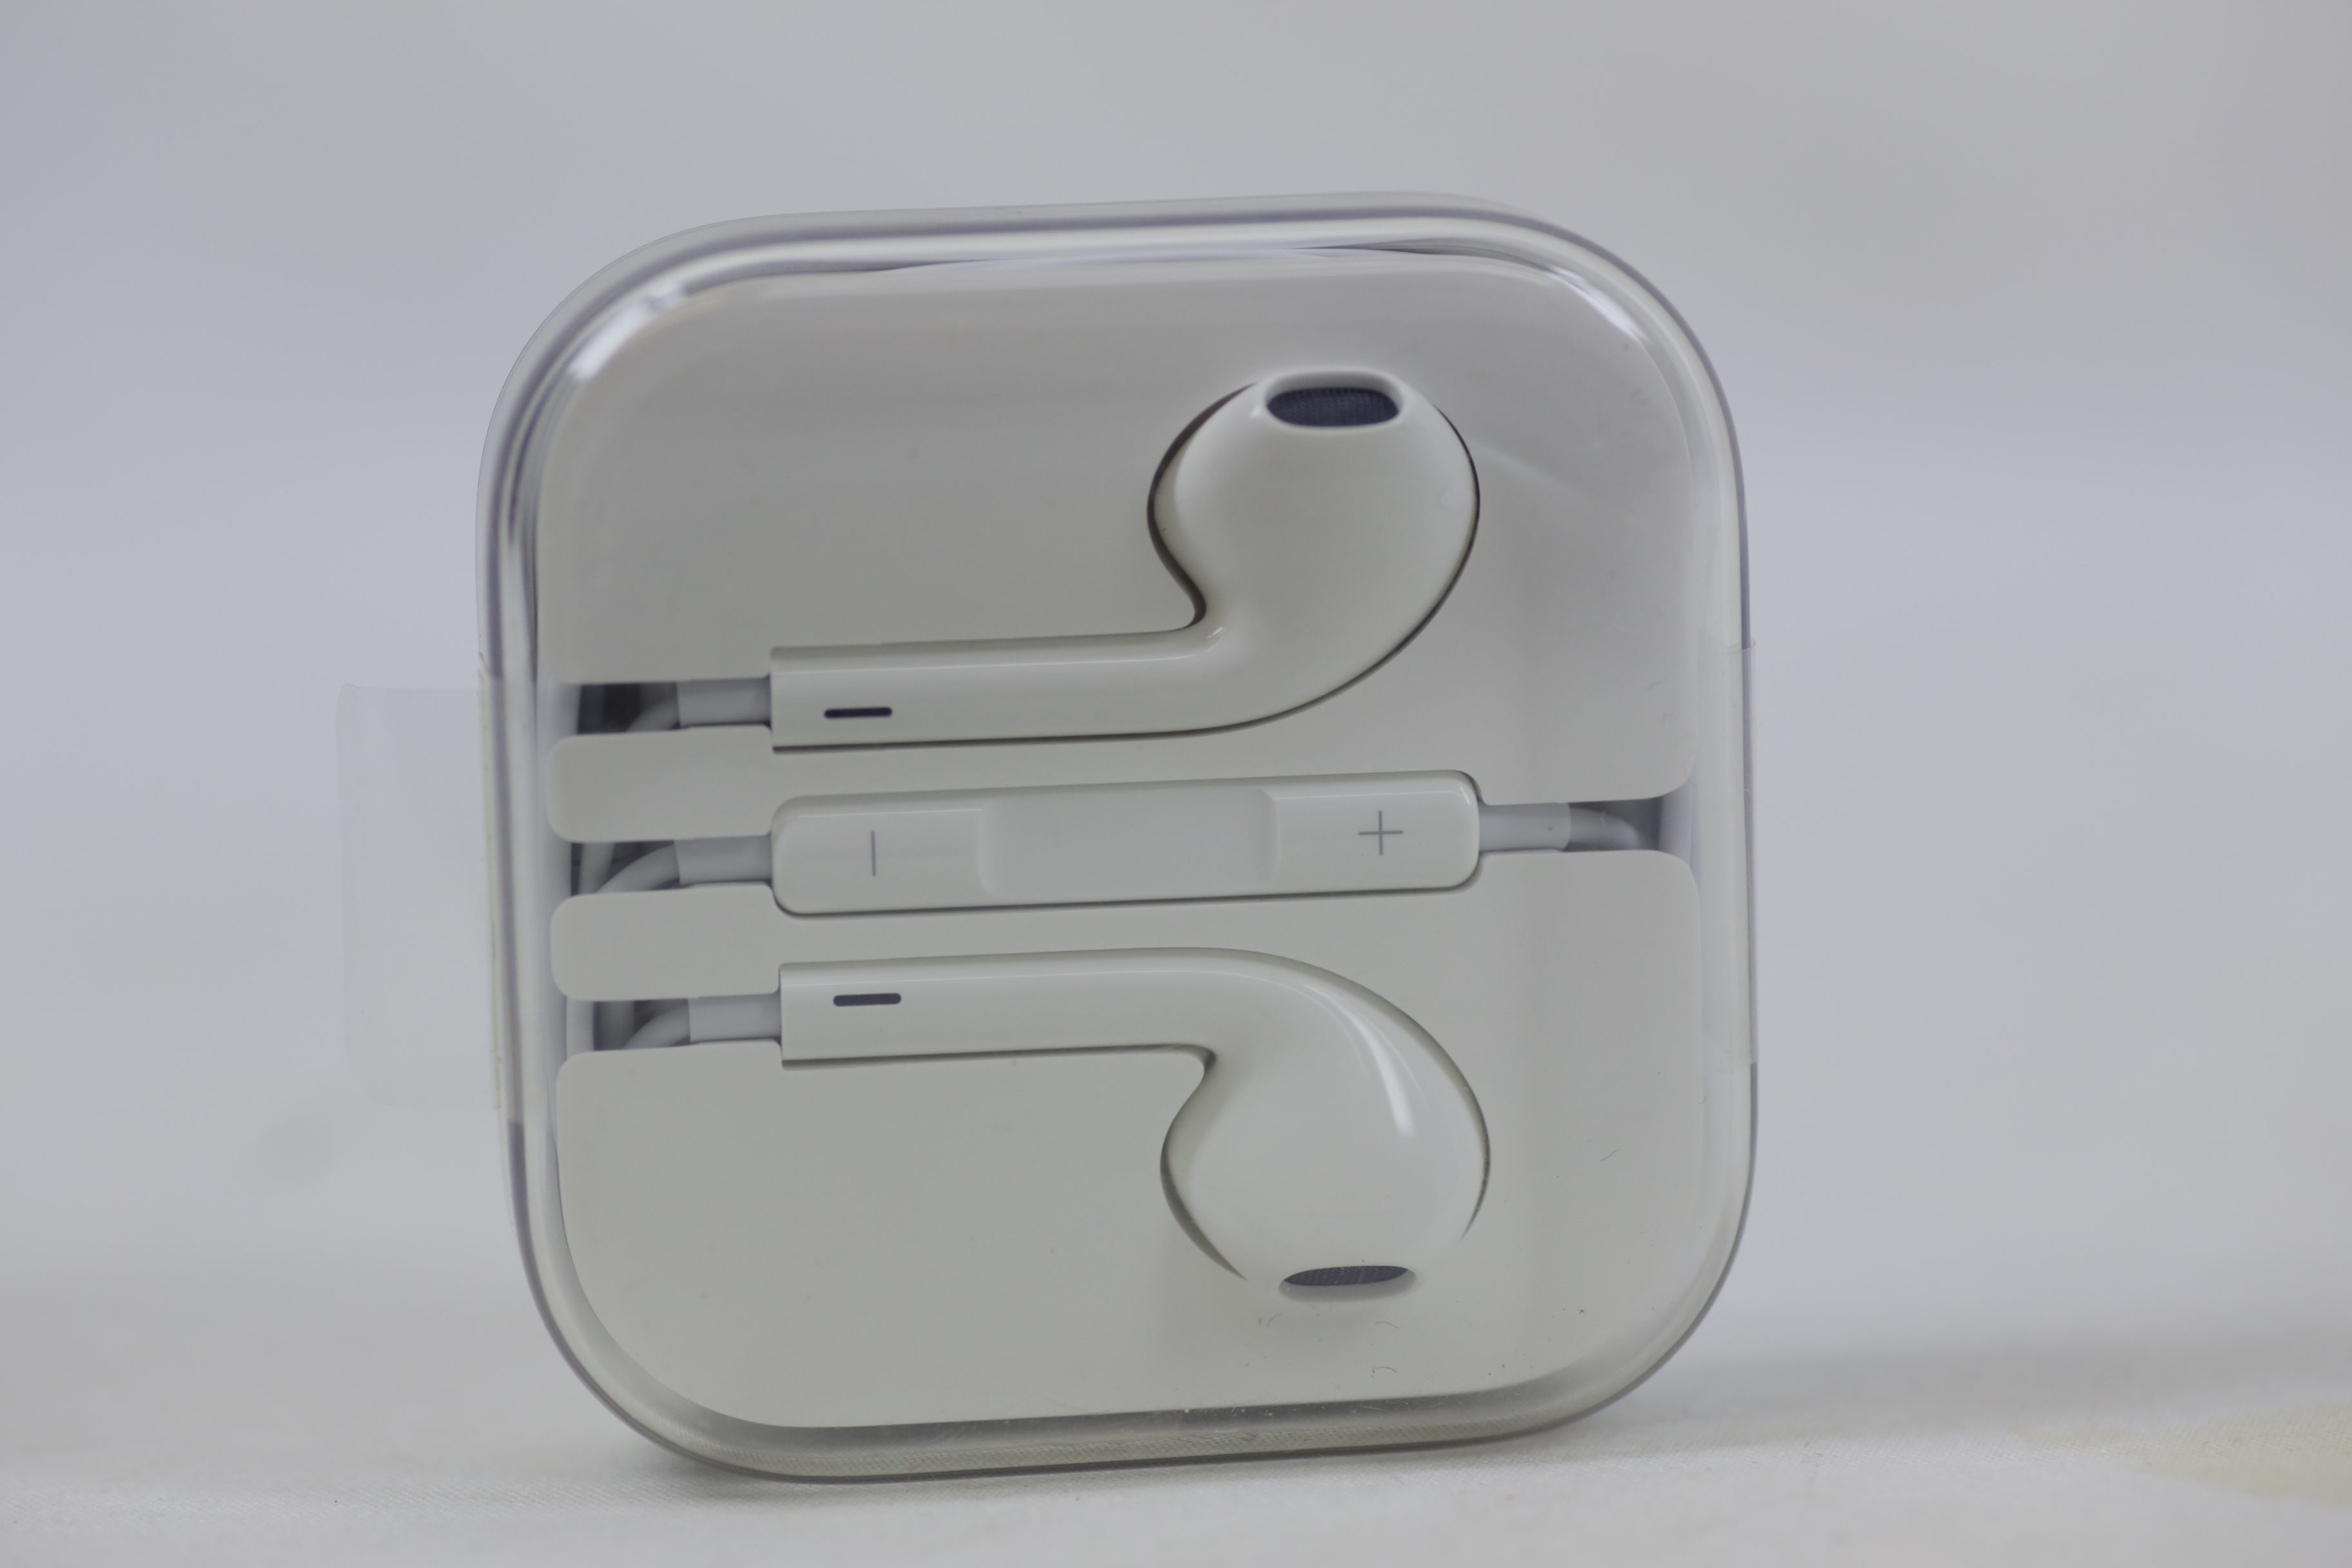 Apple Genuine Inner Ear Headphones with Volume Control Thumbnail 7